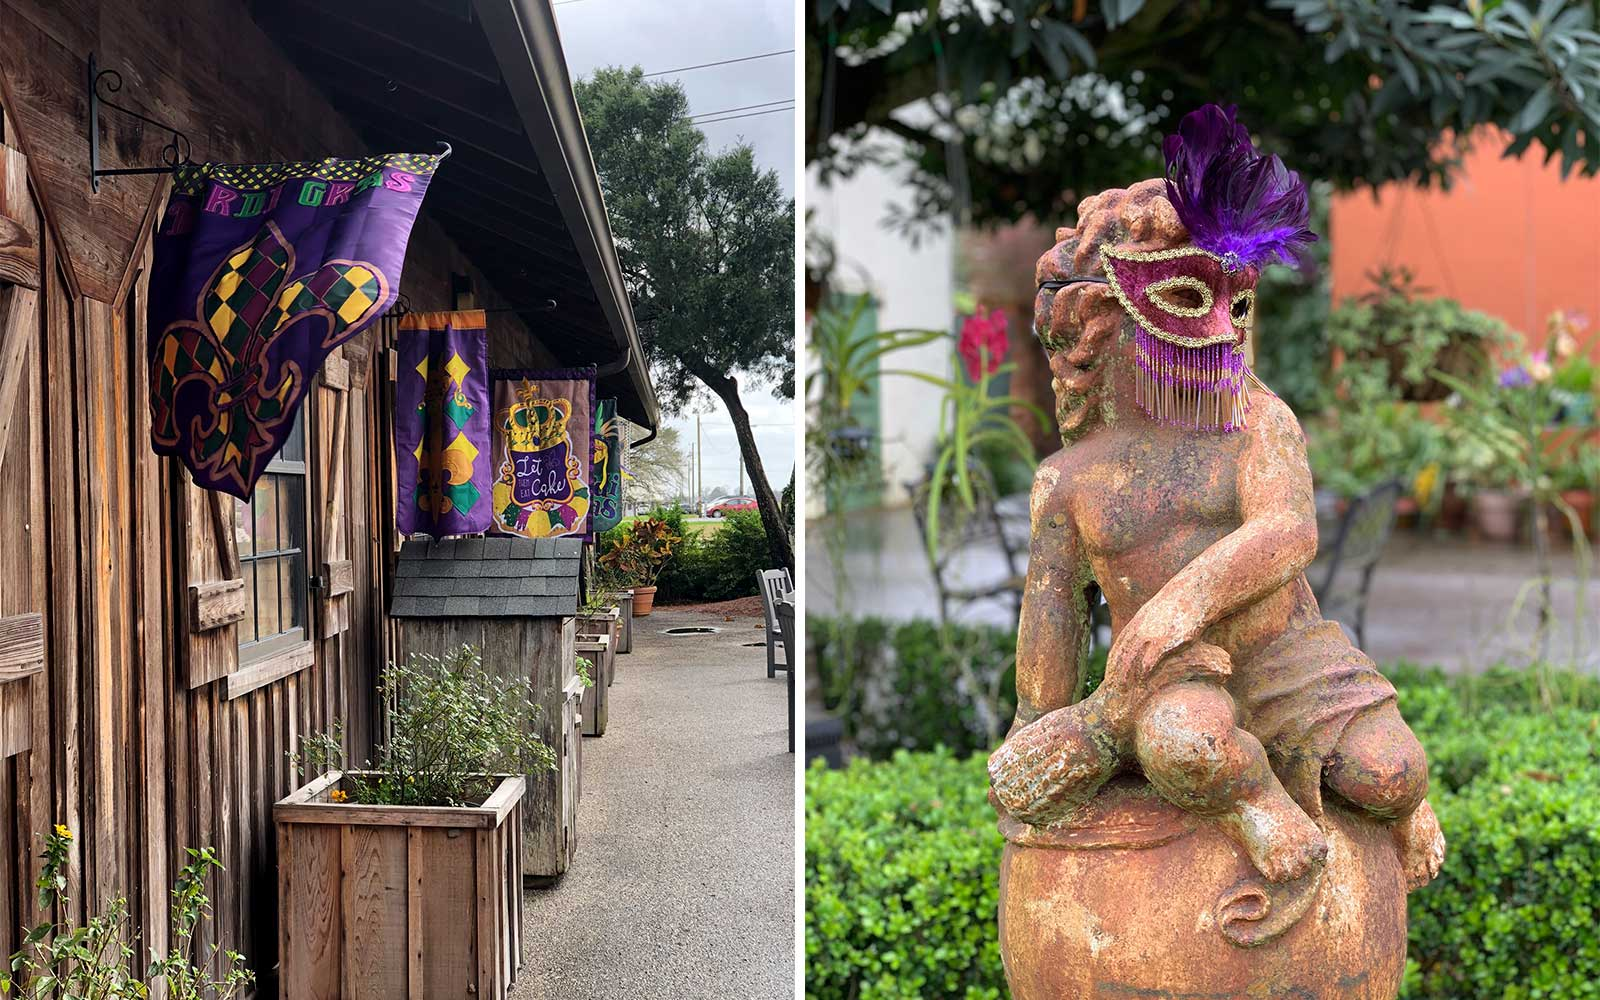 Oak Alley and Hromas House, in Louisiana's Plantation Country, decorated for Mardi Gras